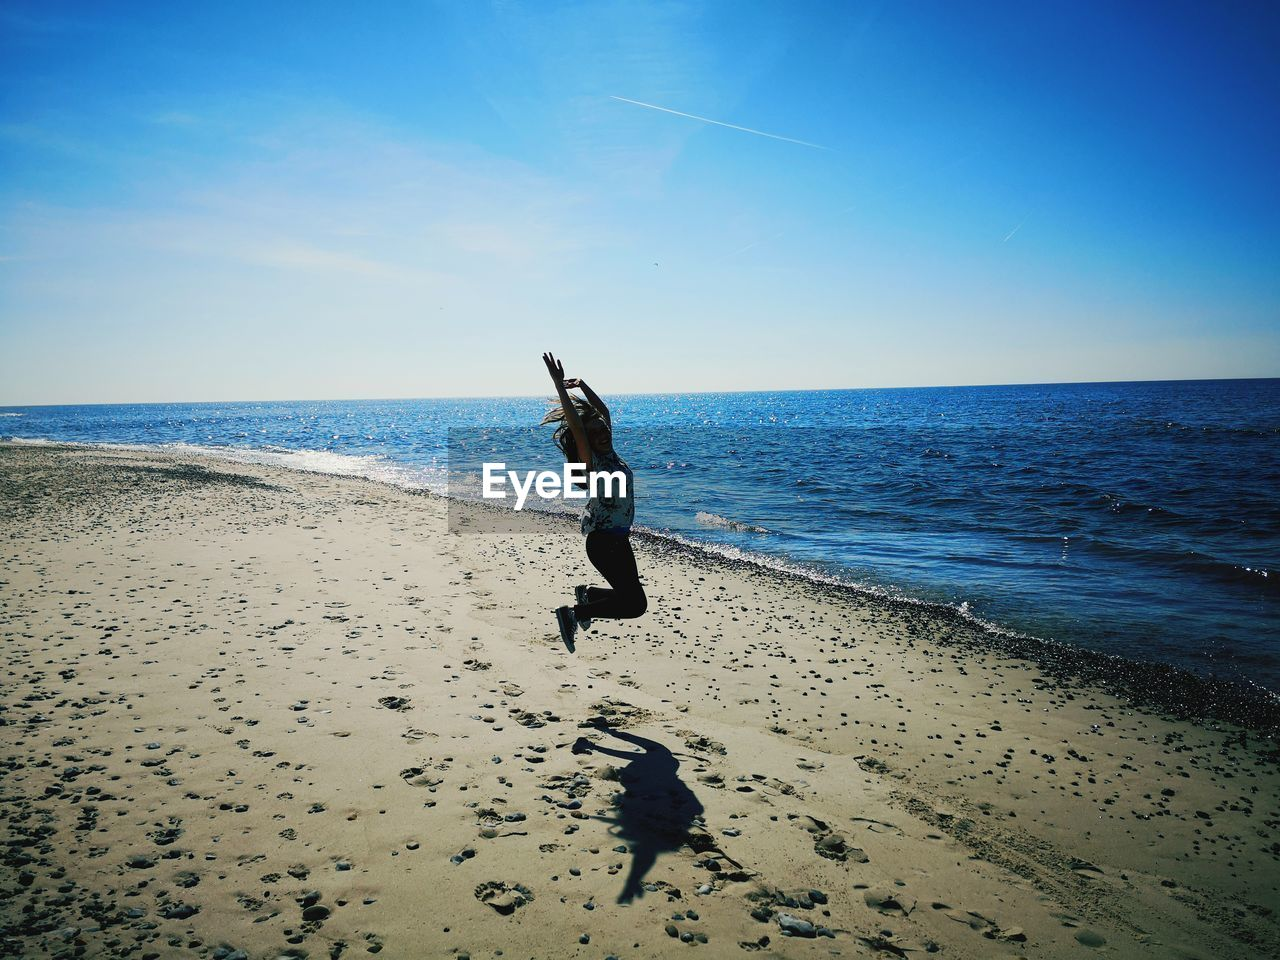 sky, sea, beach, water, land, horizon over water, horizon, sand, scenics - nature, beauty in nature, real people, leisure activity, nature, full length, one person, lifestyles, day, tranquility, outdoors